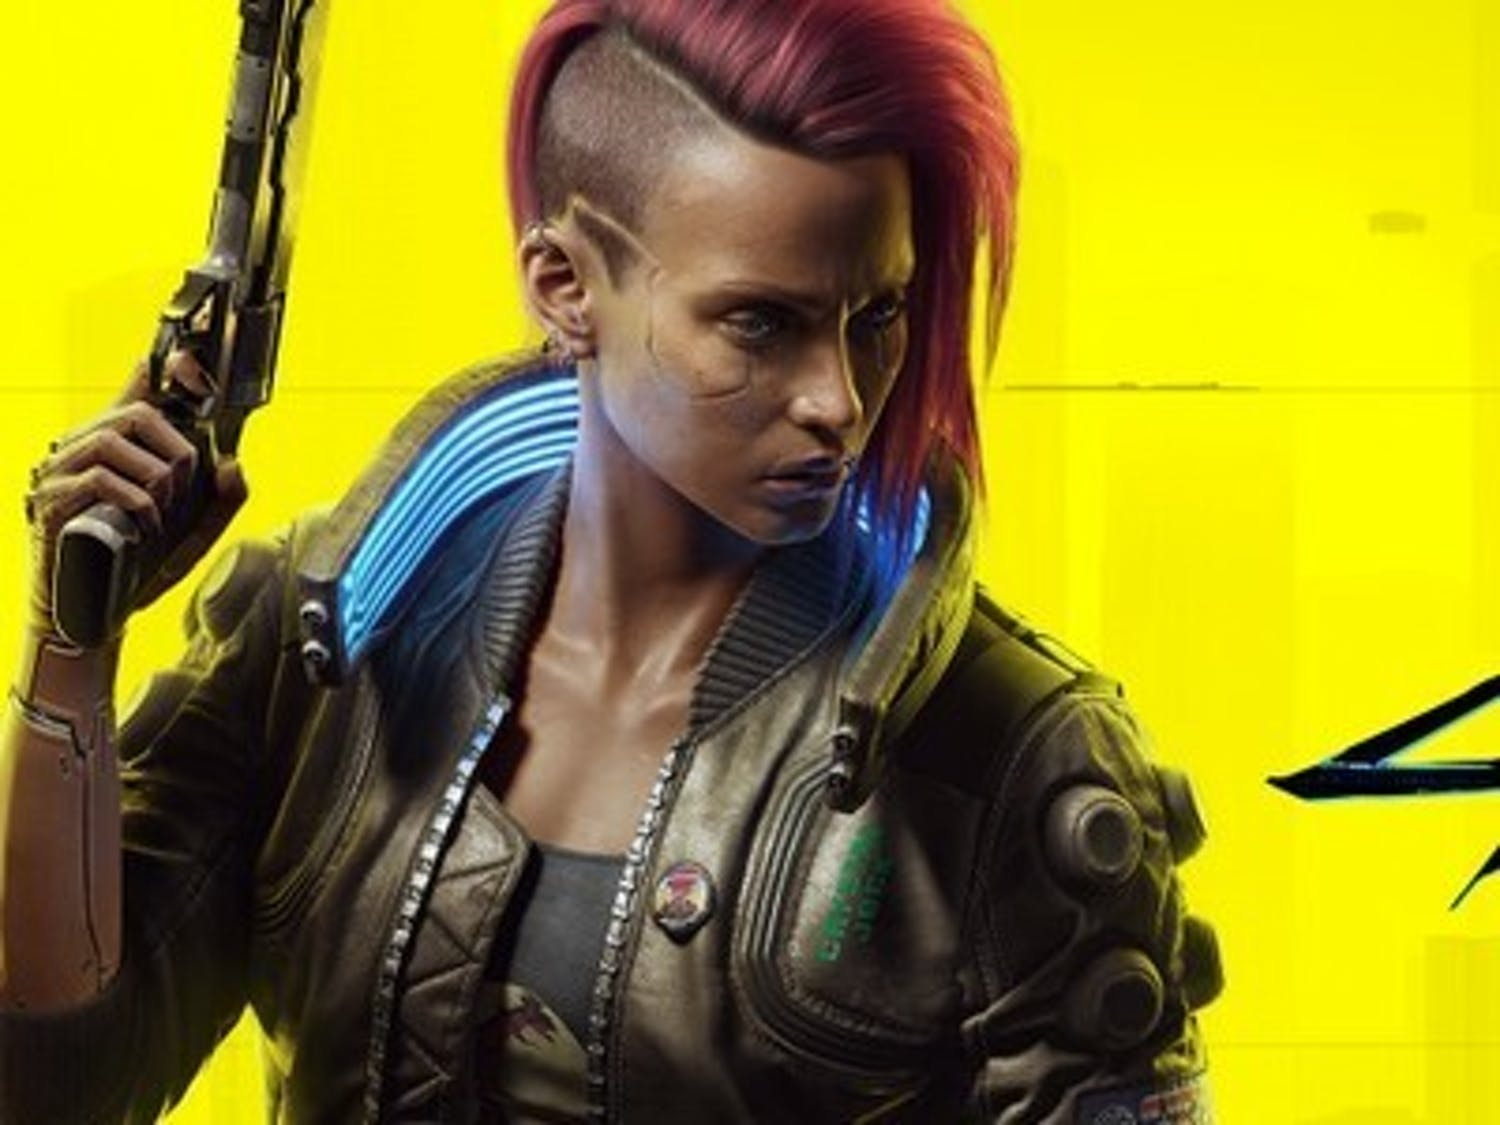 """""""Cyberpunk 2077"""" has become well-known not just for its hype in the gaming community, but for the hours of unpaid and unfair work that went into making it."""